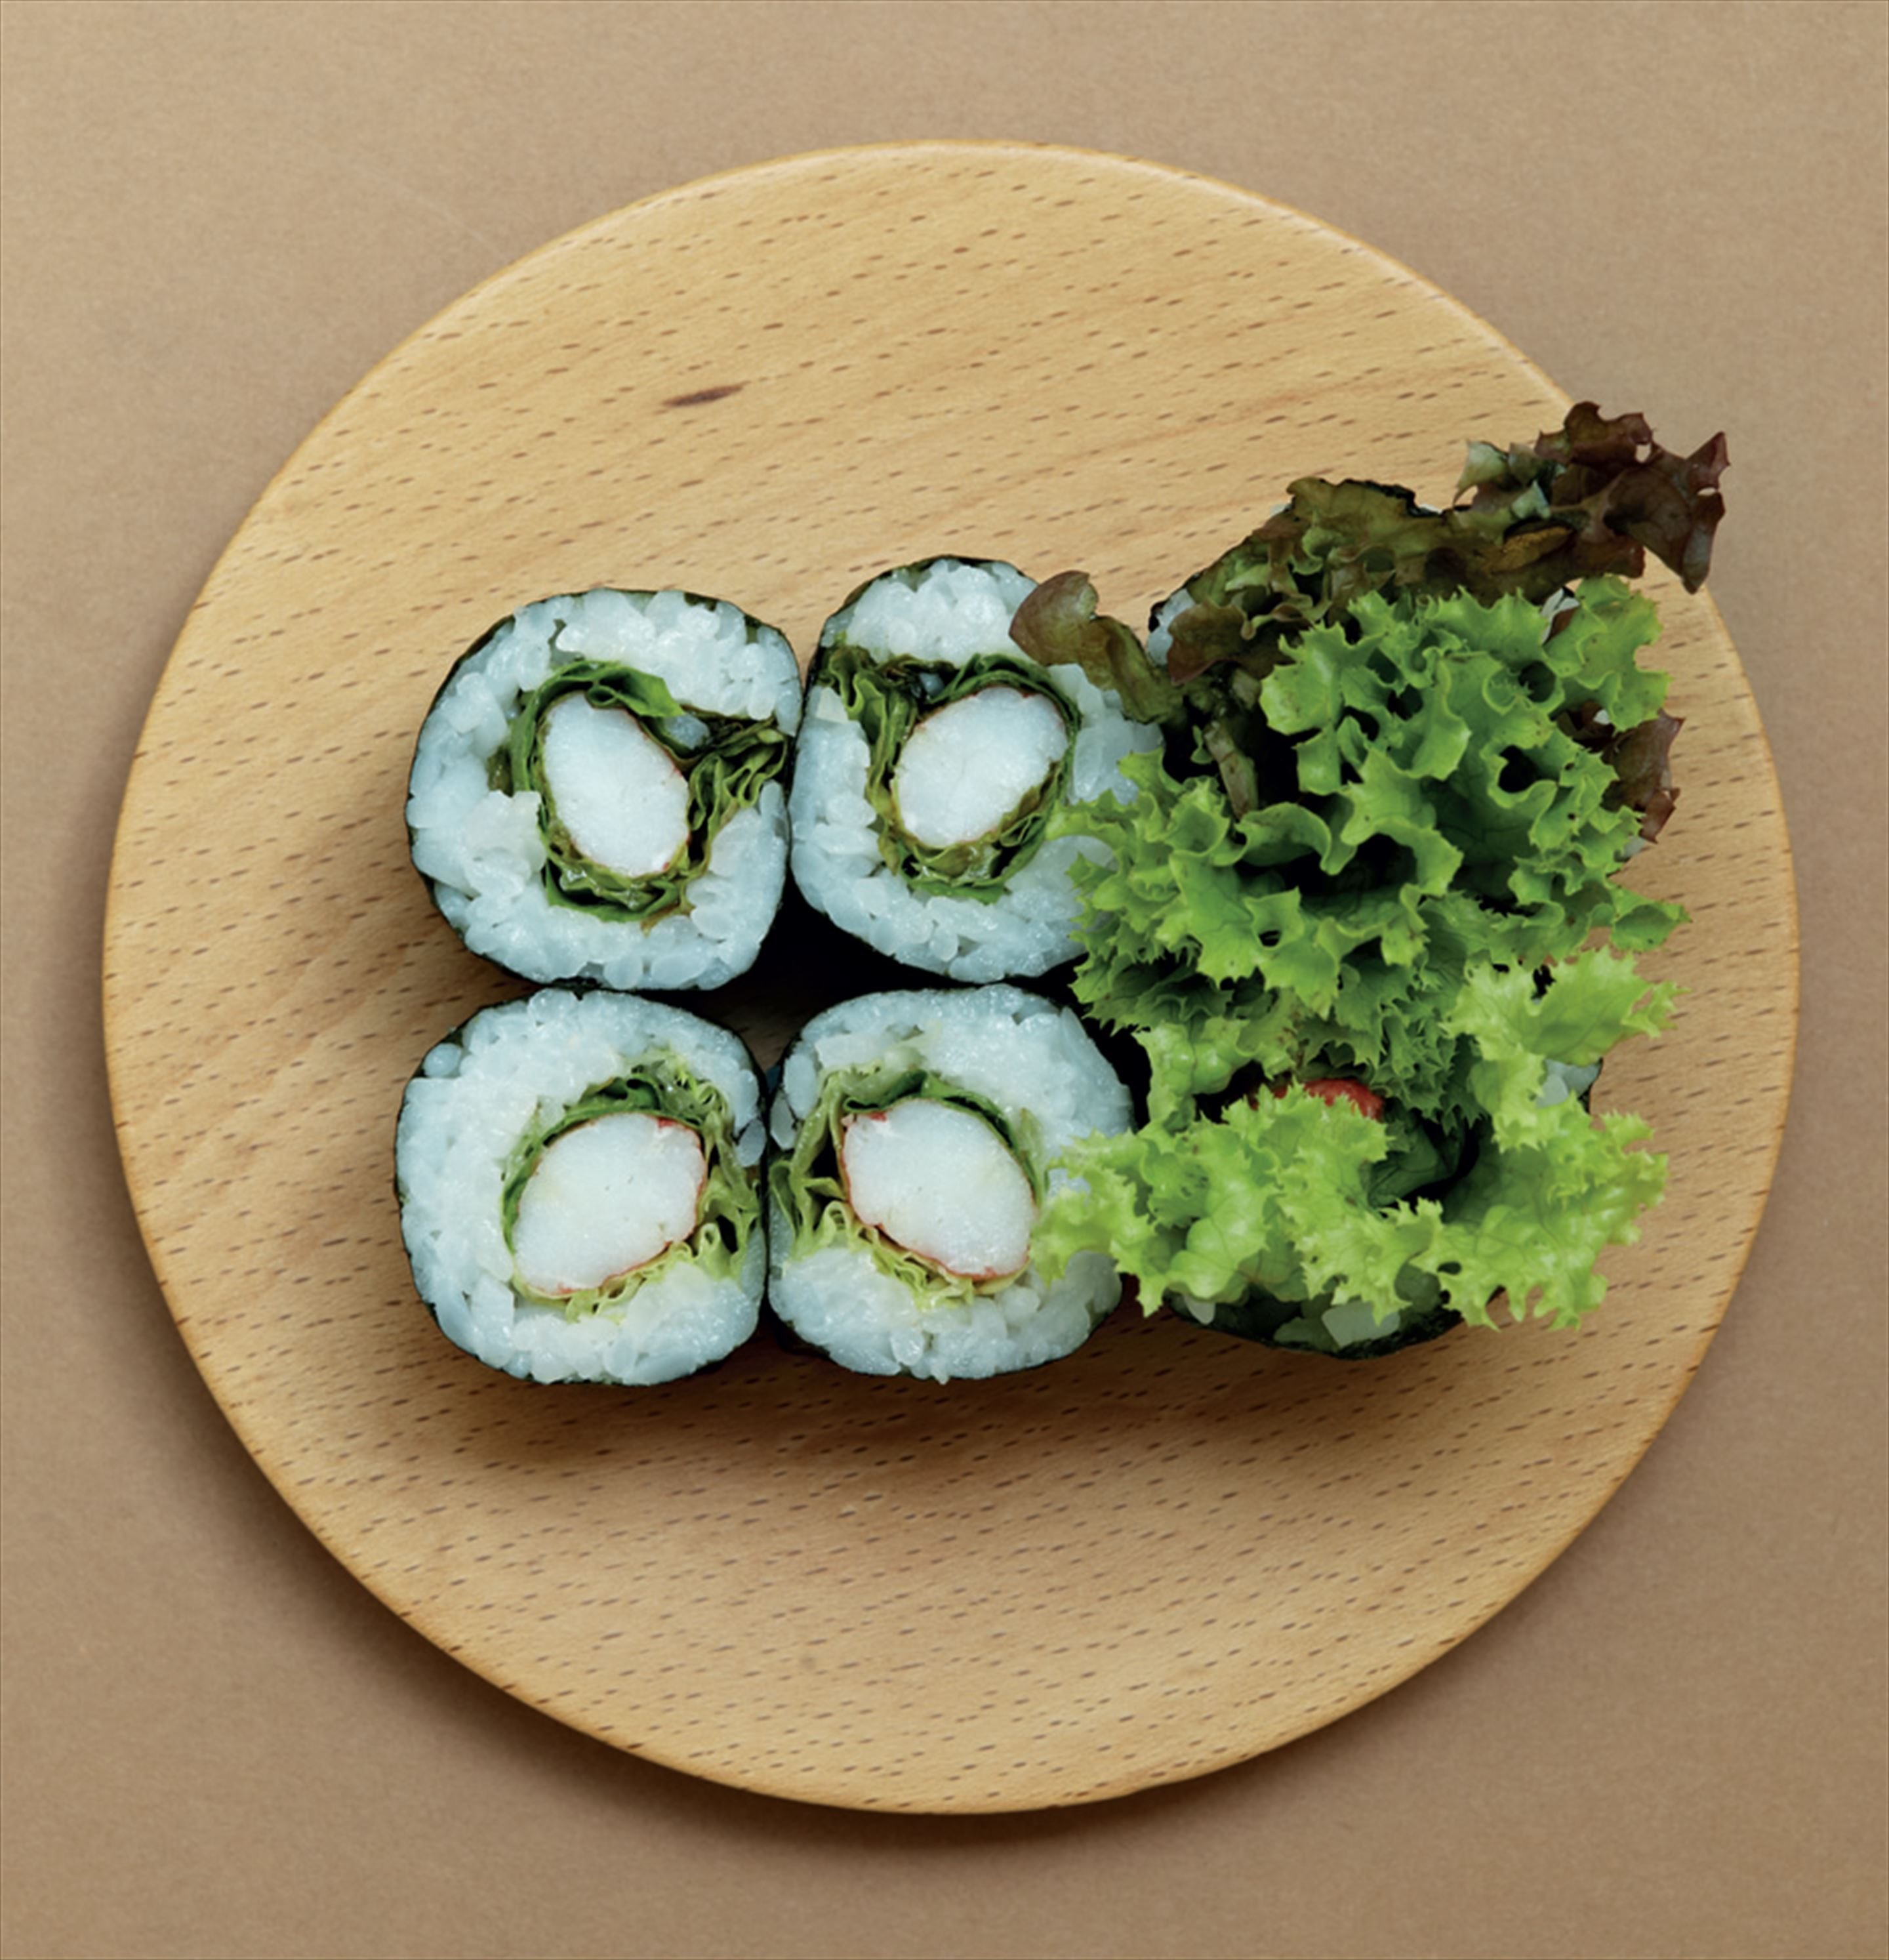 Crab stick and lettuce hosomaki rolls